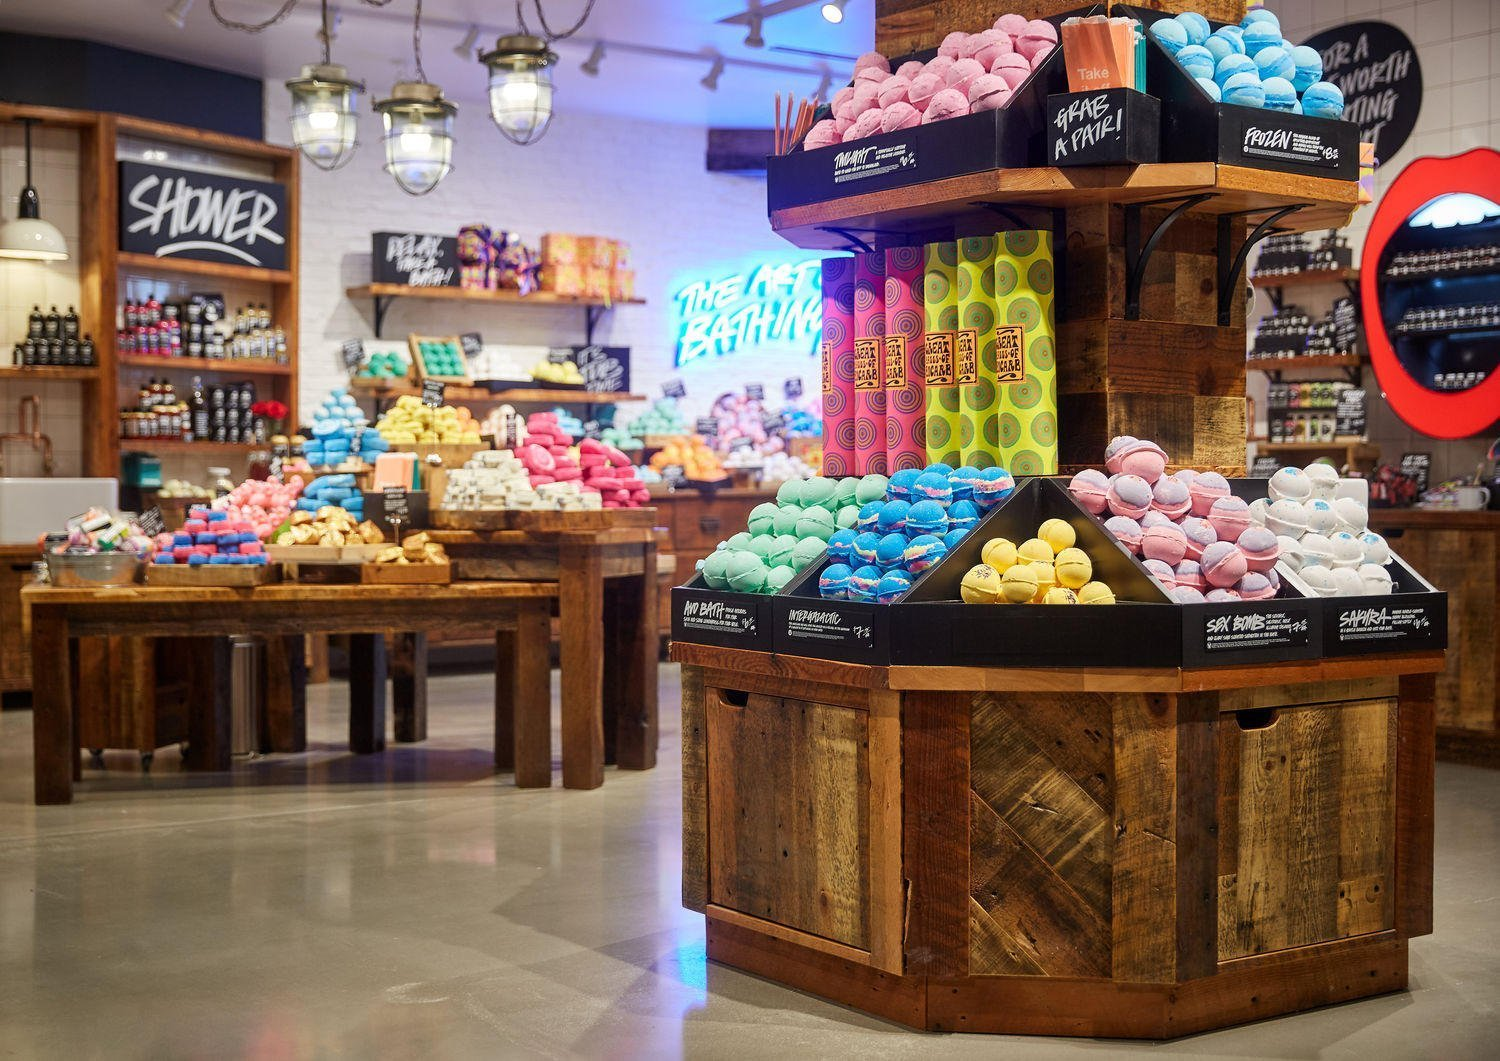 lush cosmetics prepares to reopen expanded robson street